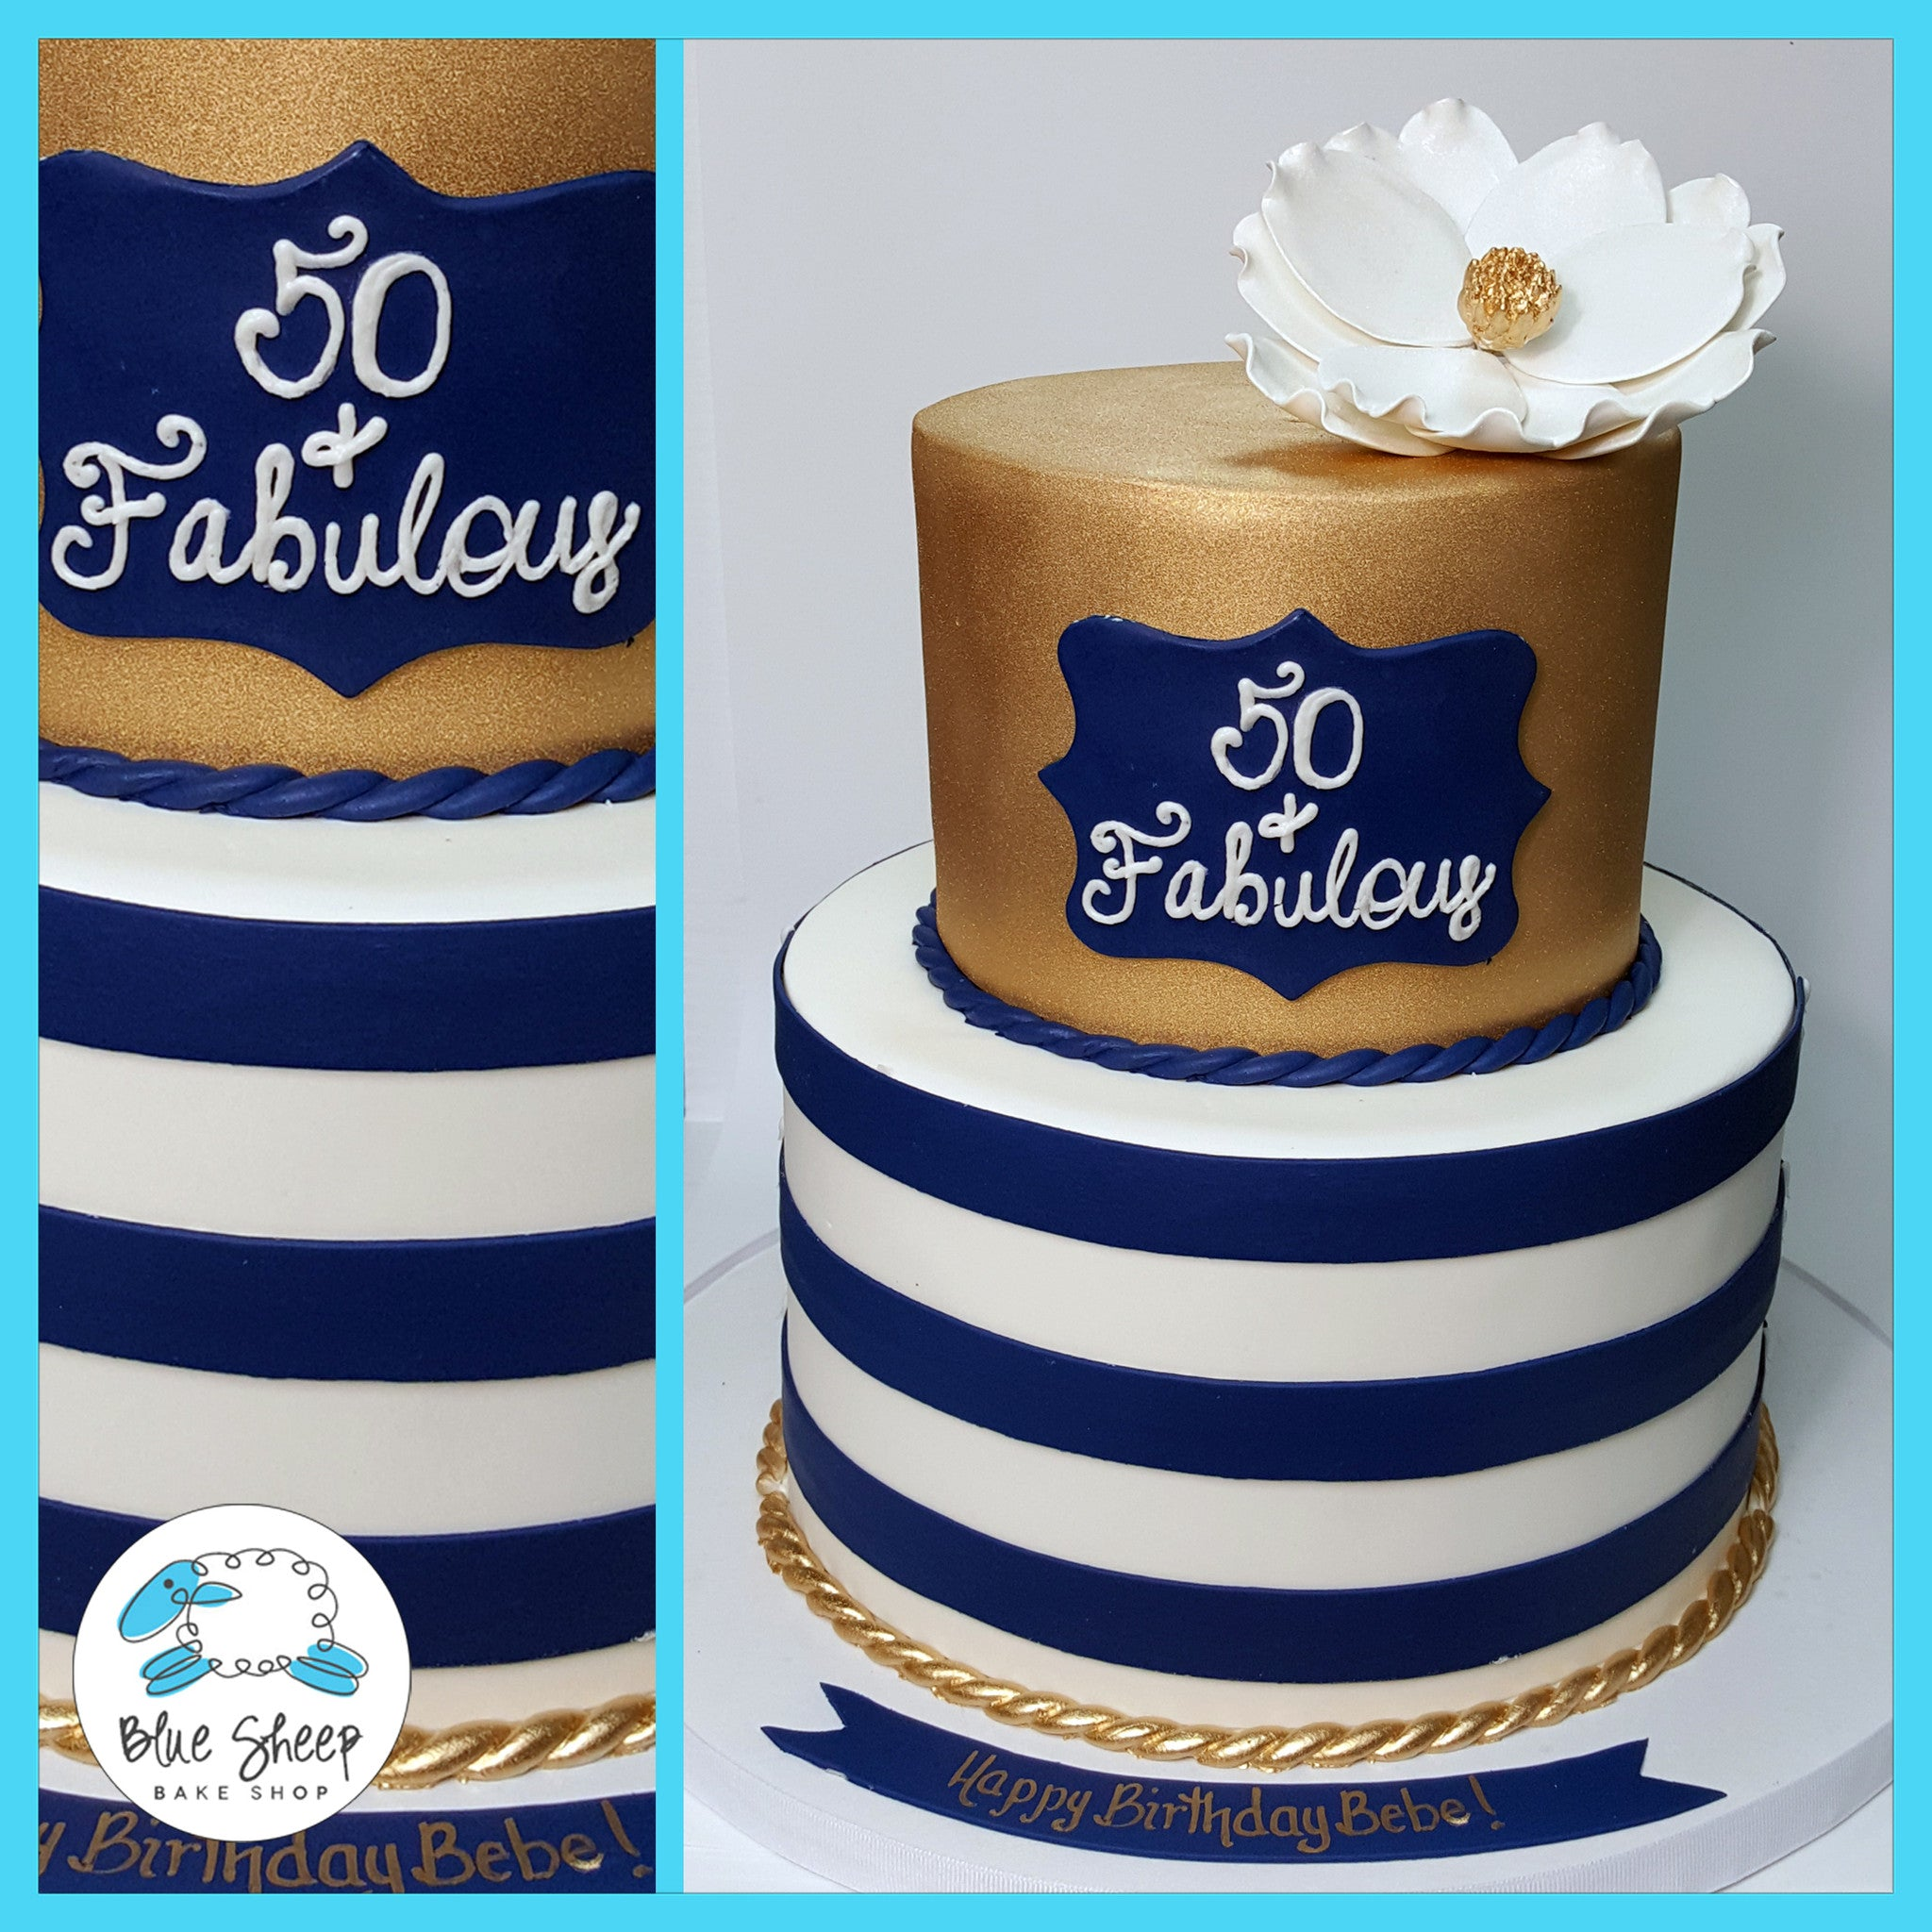 Sensational Navy And Gold 50 And Fabulous Birthday Cake Blue Sheep Bake Shop Personalised Birthday Cards Paralily Jamesorg